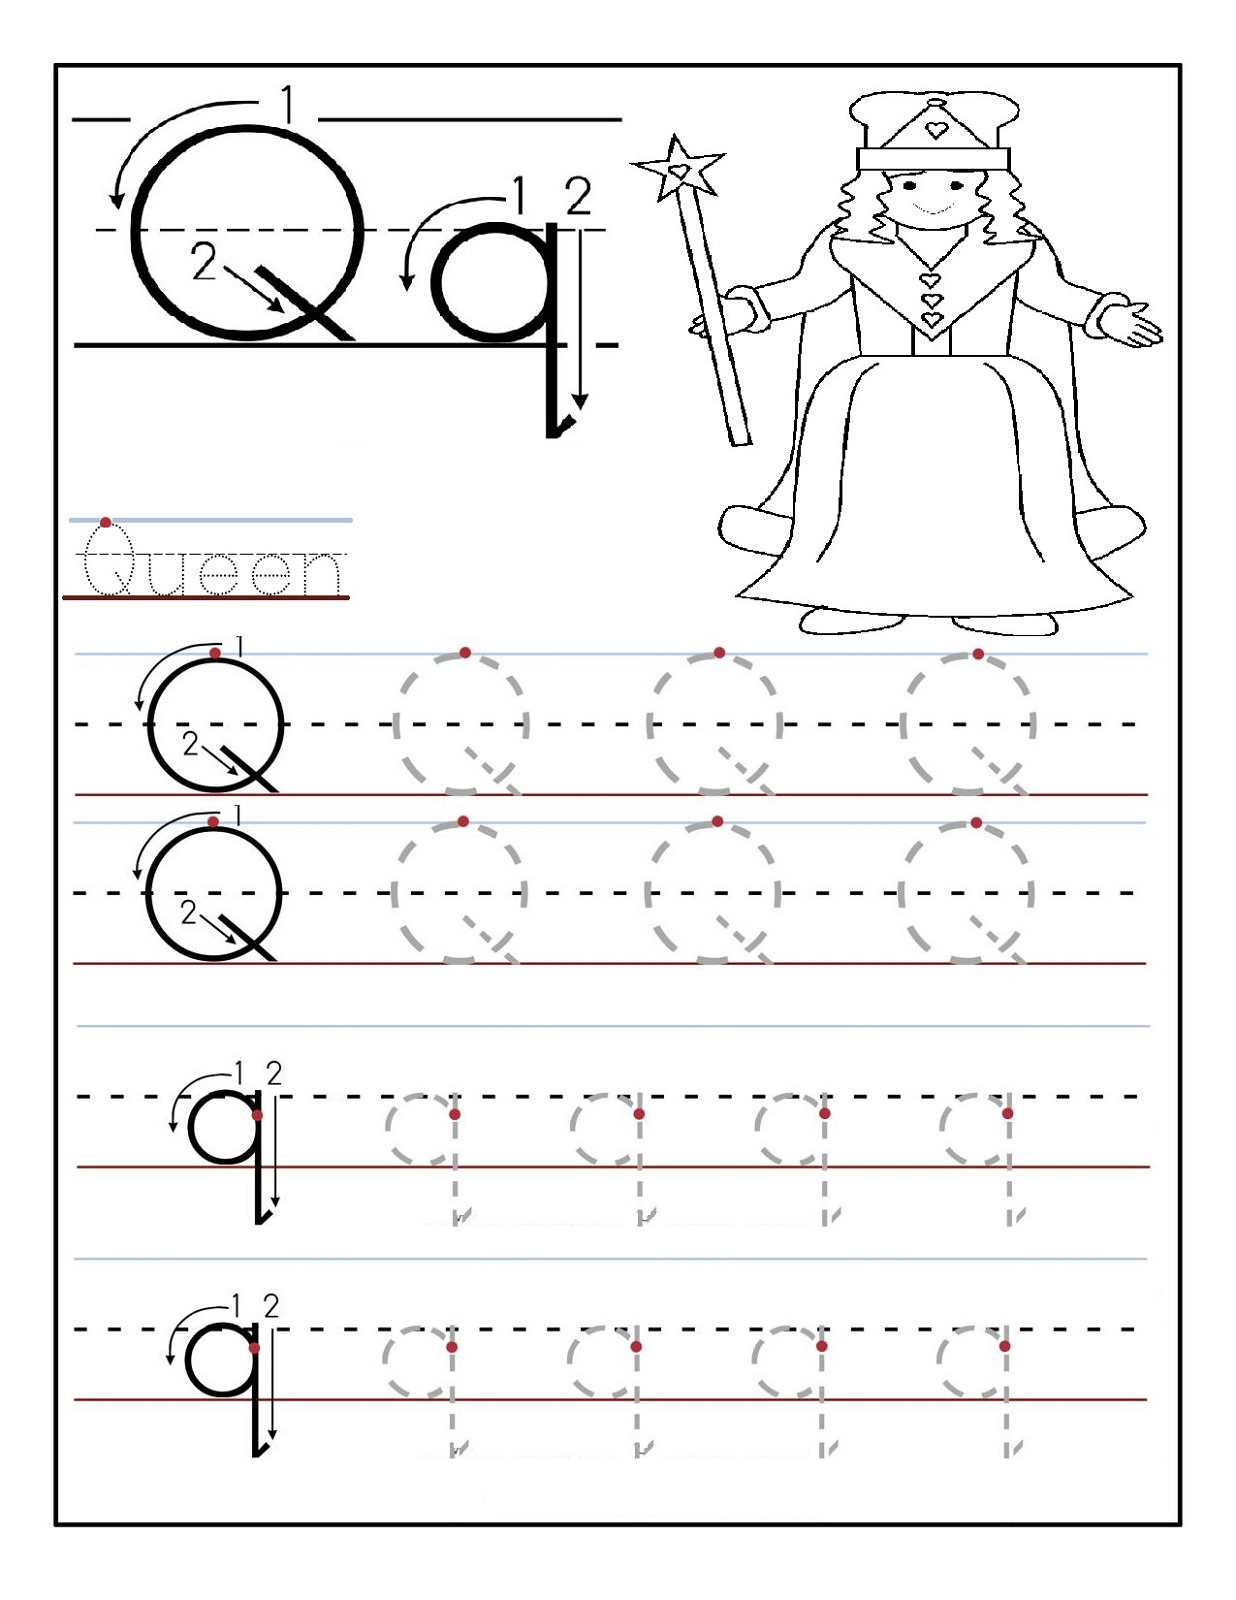 Preschool Writing Worksheets : Preschool alphabet worksheets activity shelter